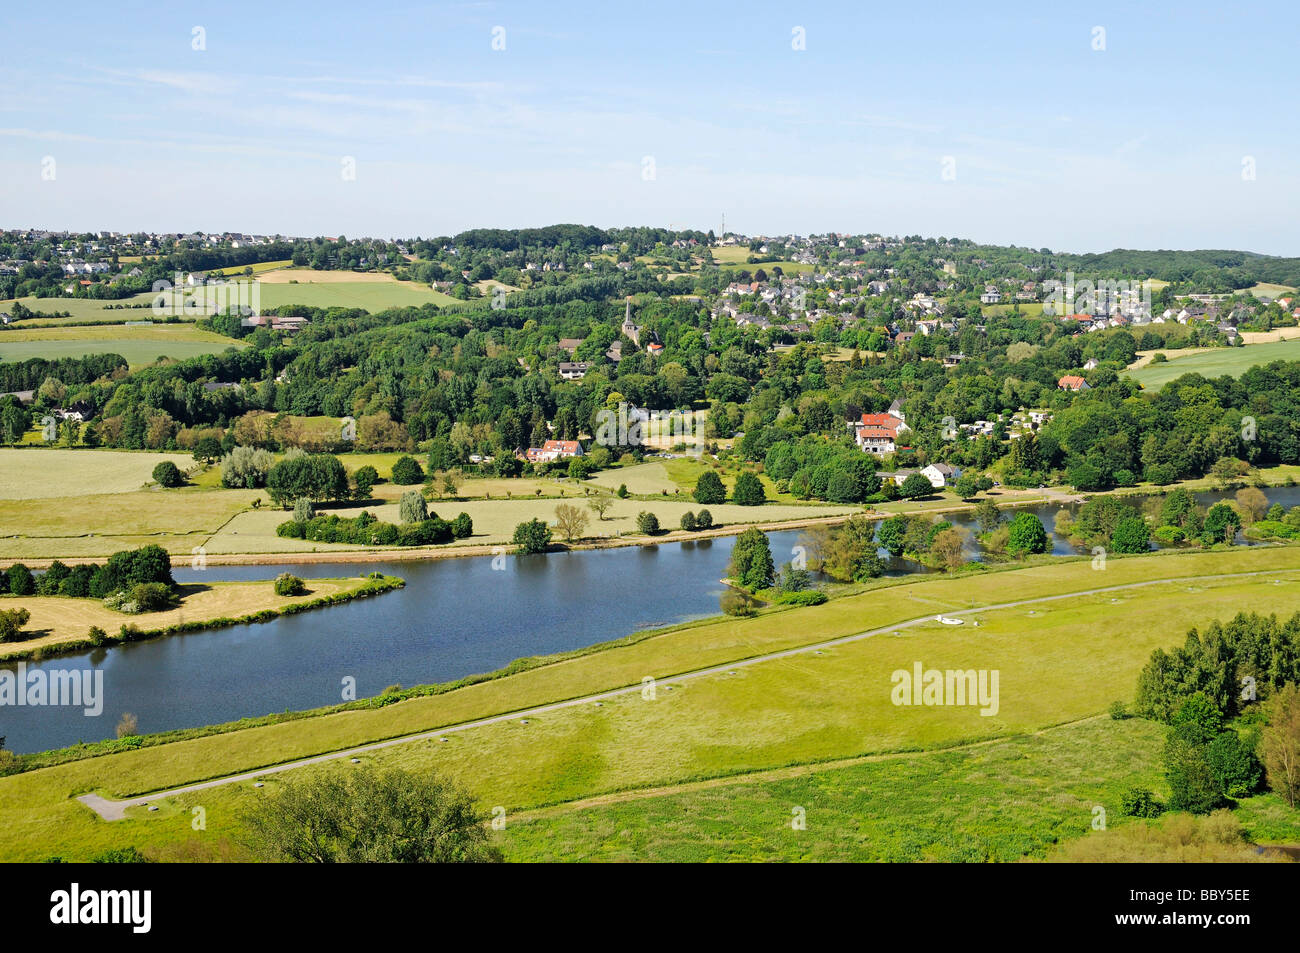 Bochum Stiepel, view from the castle to the Ruhr valley and the river Ruhr, Blankenstein, Hattingen, North Rhine - Stock Image